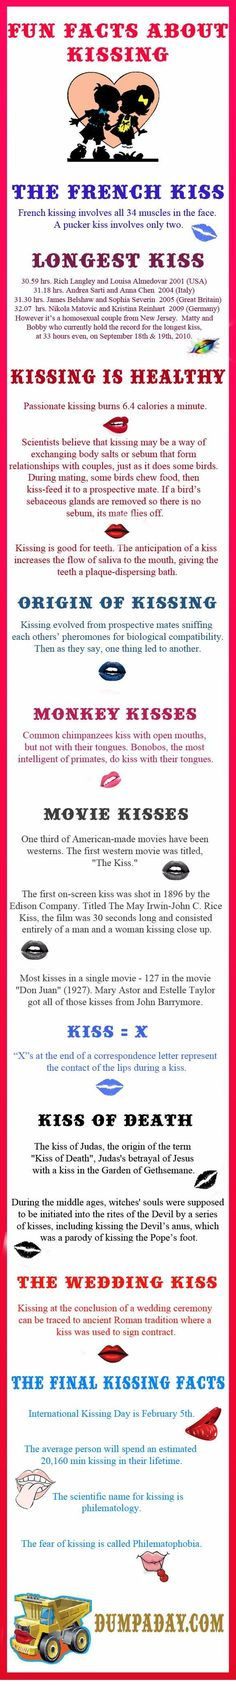 Fun Facts About Kissing